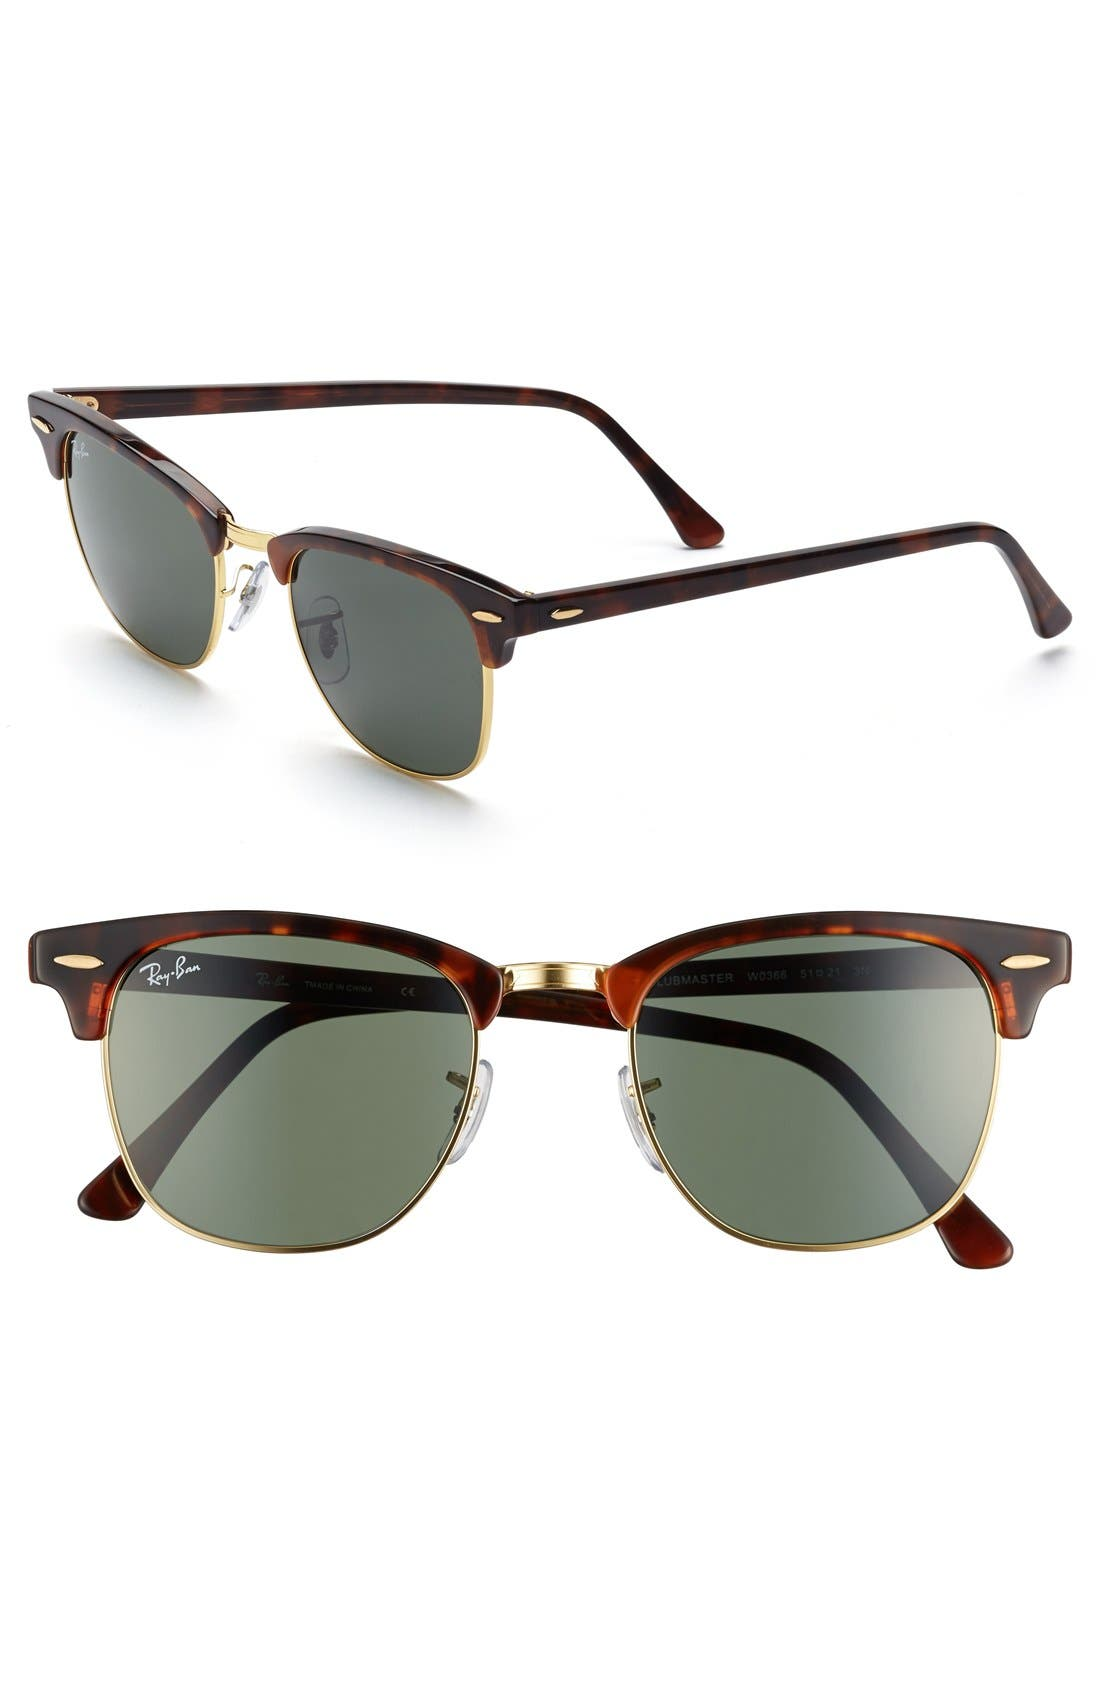 Ray-Ban Classic Clubmaster 51Mm Sunglasses - Dark Tortoise/ Green